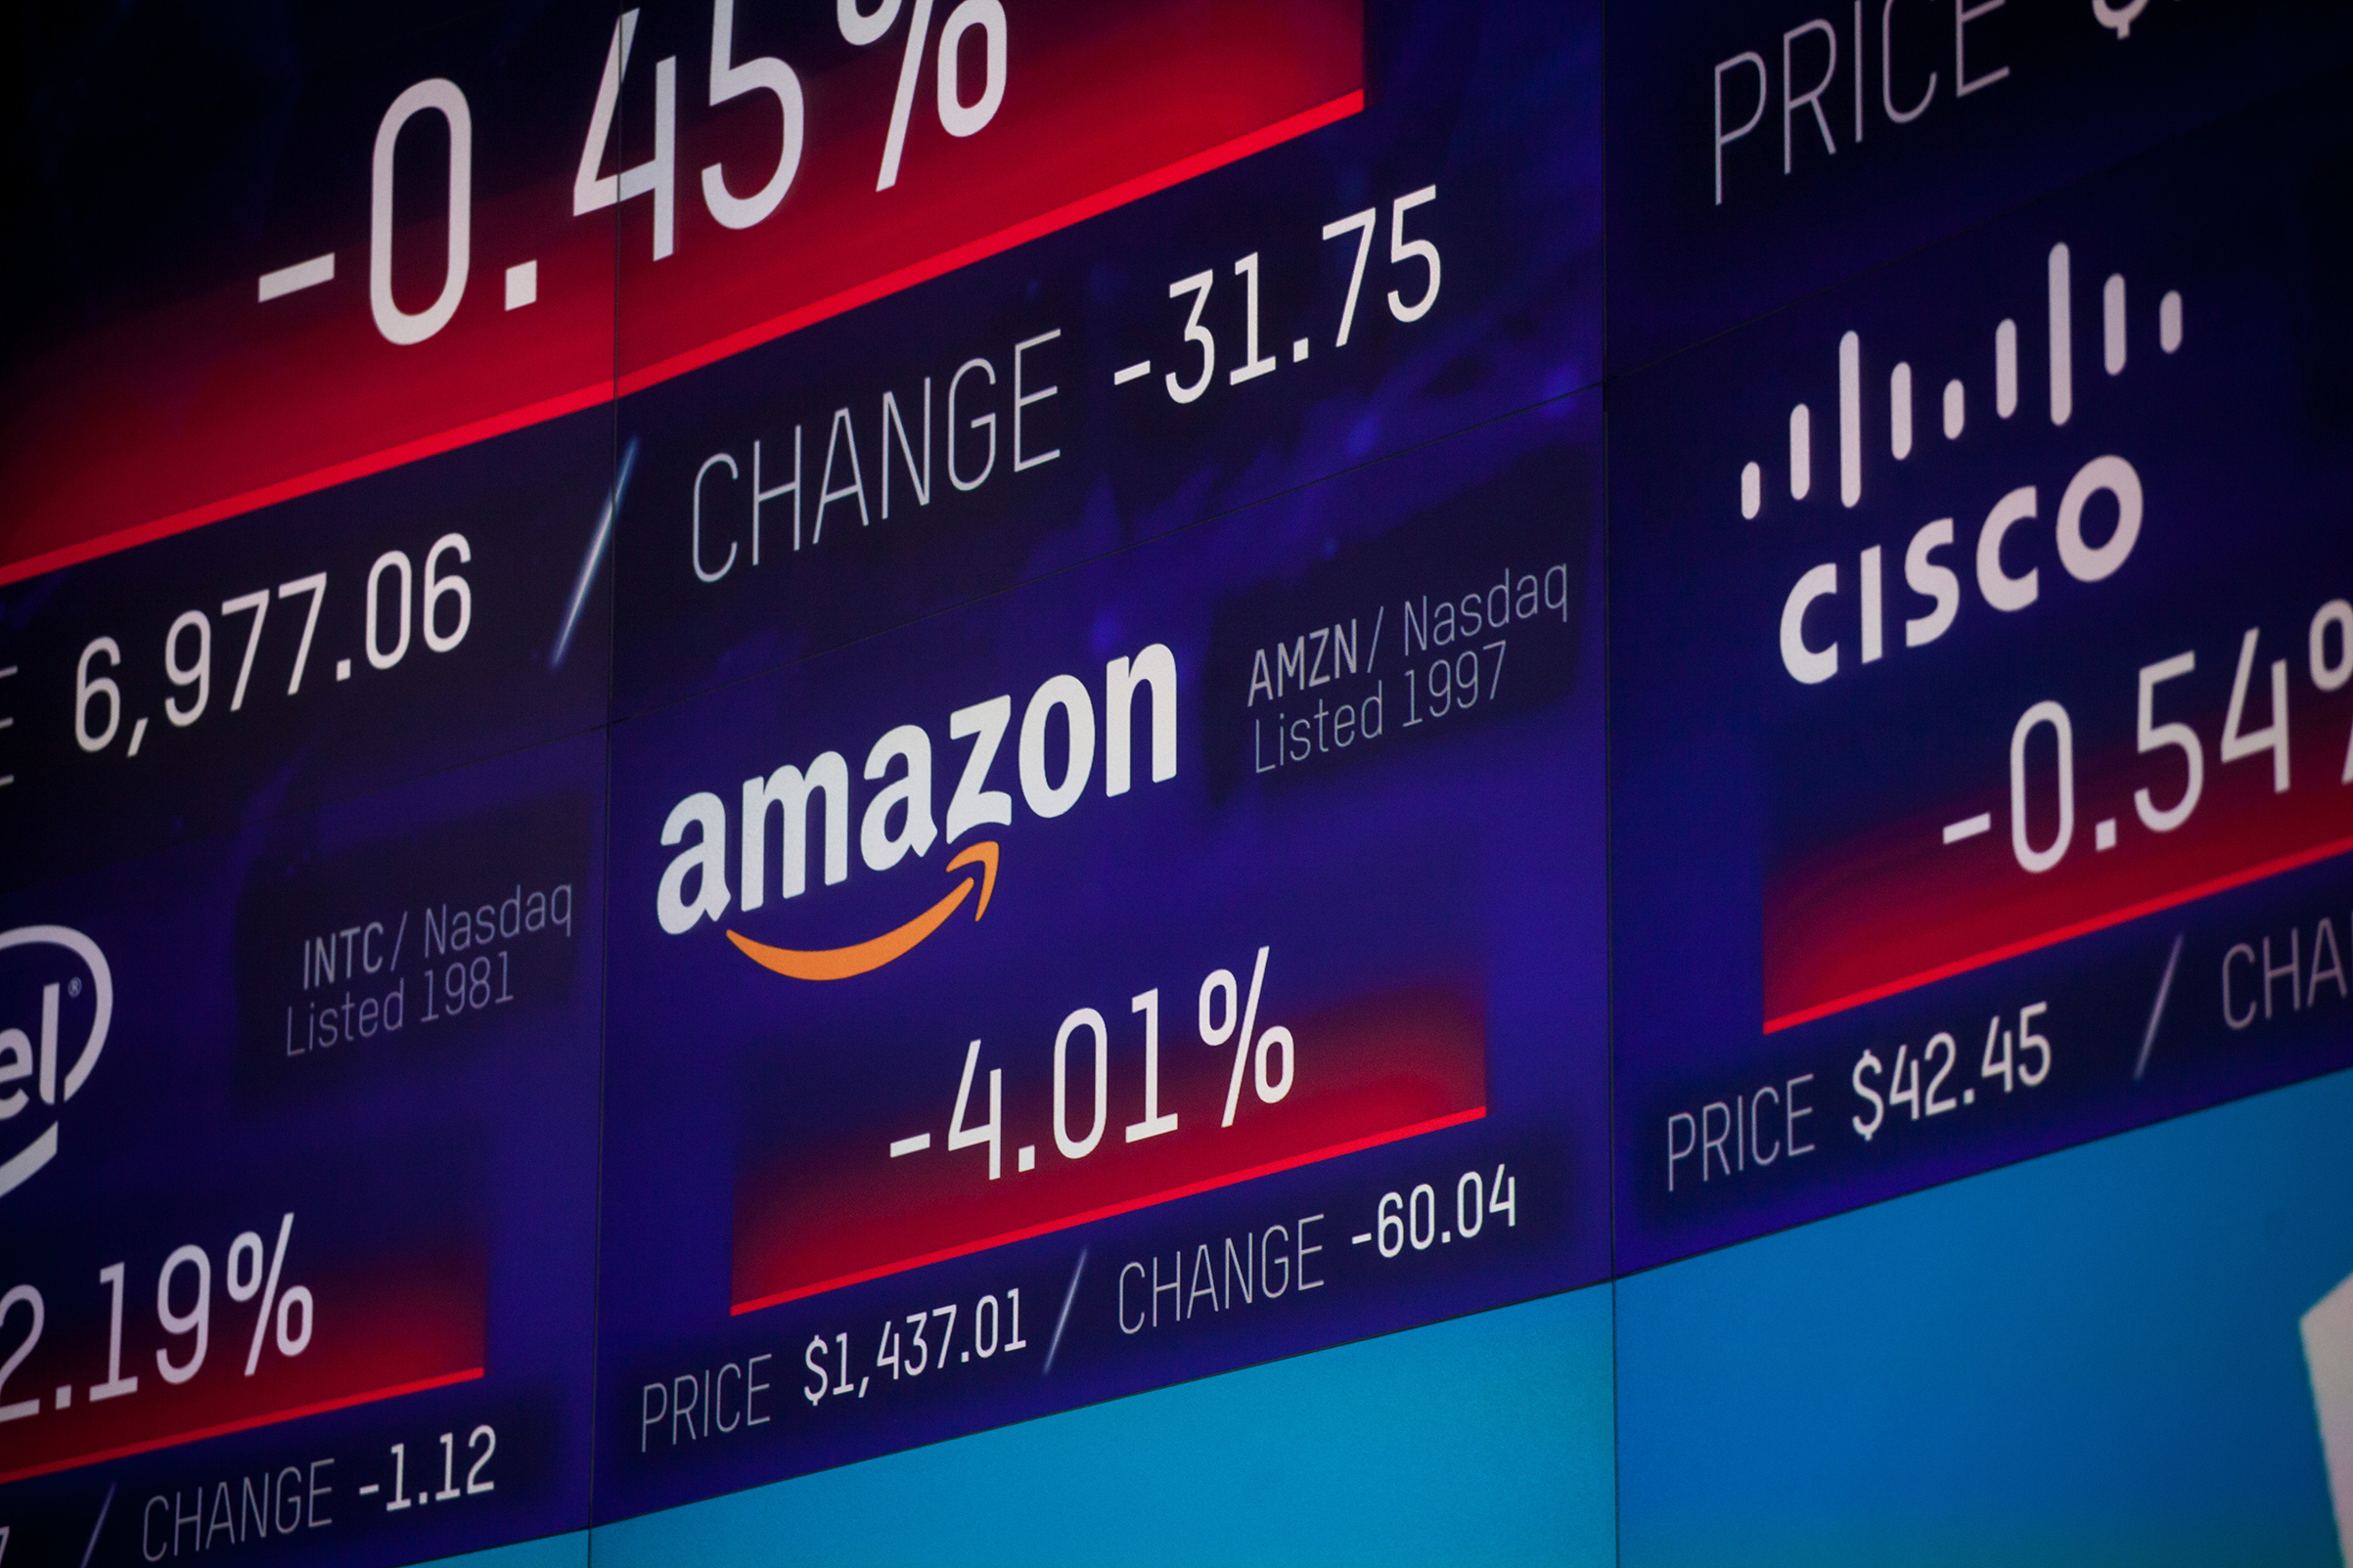 A monitor displays Amazon.com Inc. signage during the Bilibili Inc. initial public offering (IPO) at the Nasdaq MarketSite in New York on March 28, 2018.